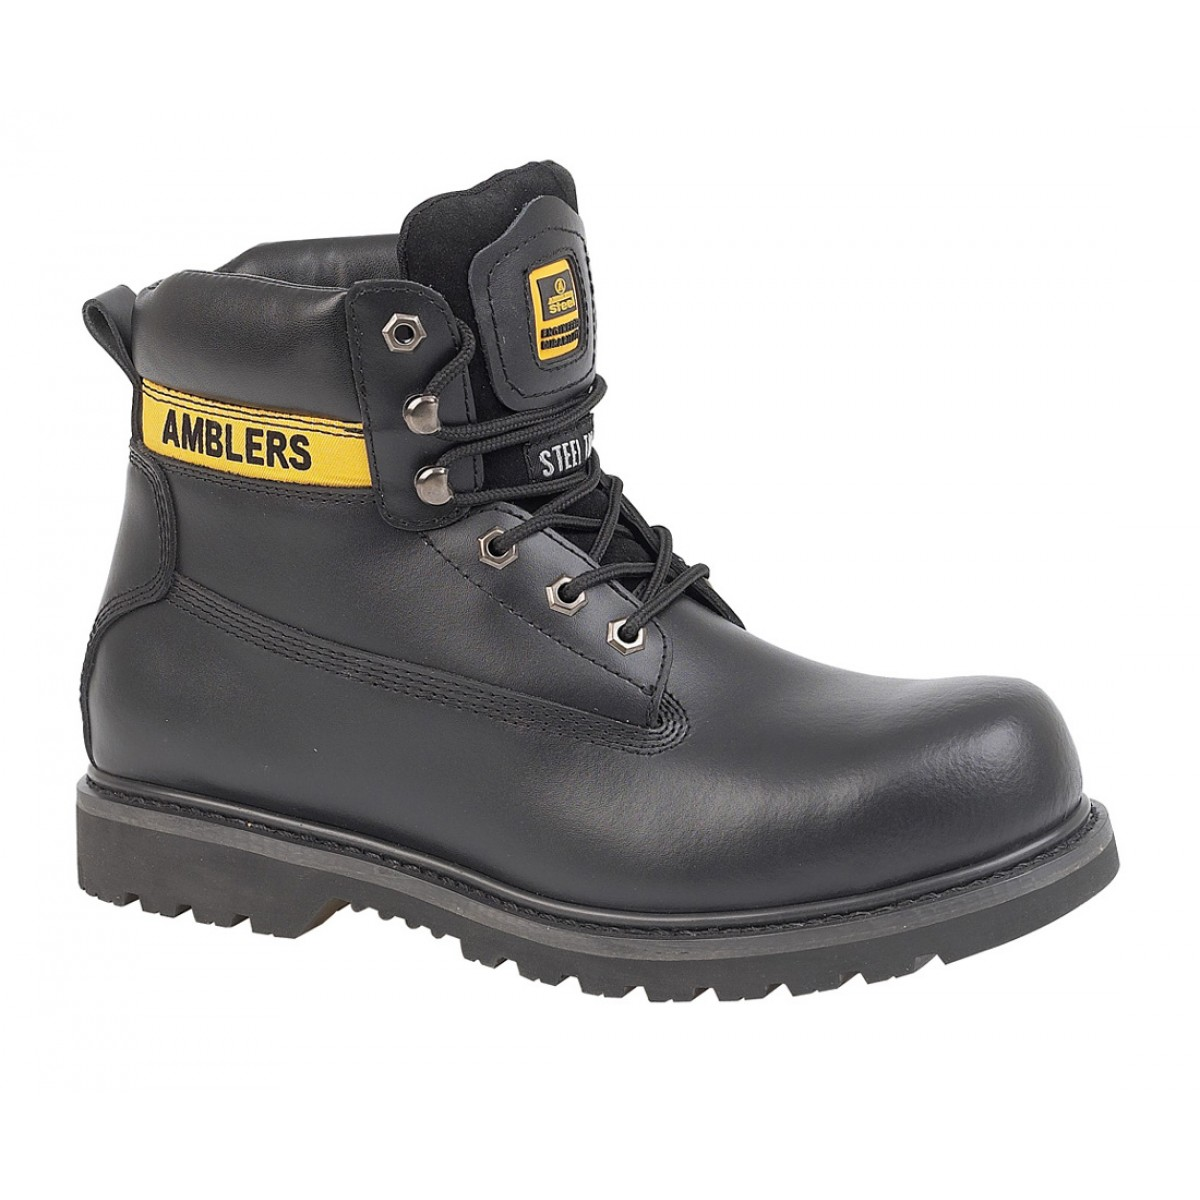 Steel Toe Capped Boots Shoes